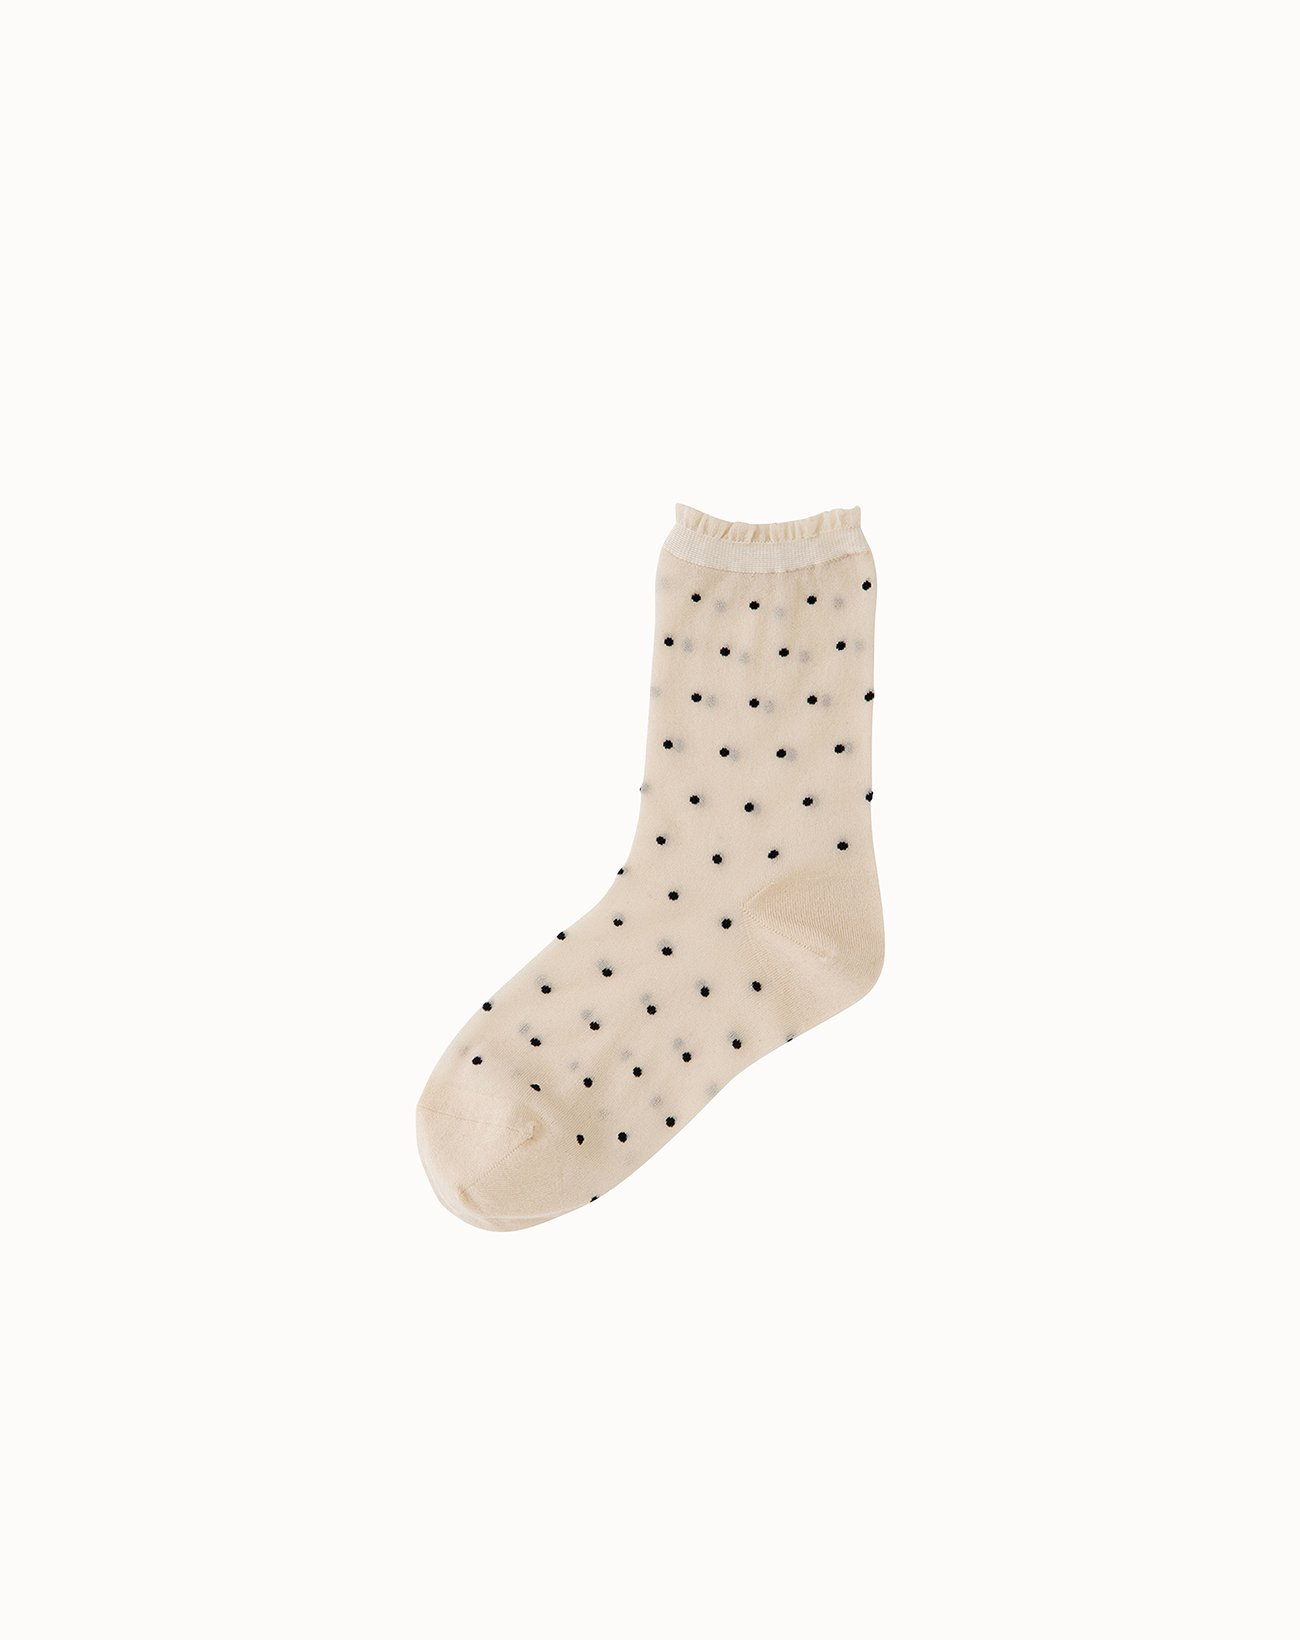 leur logette - Small Dots Socks-Cream